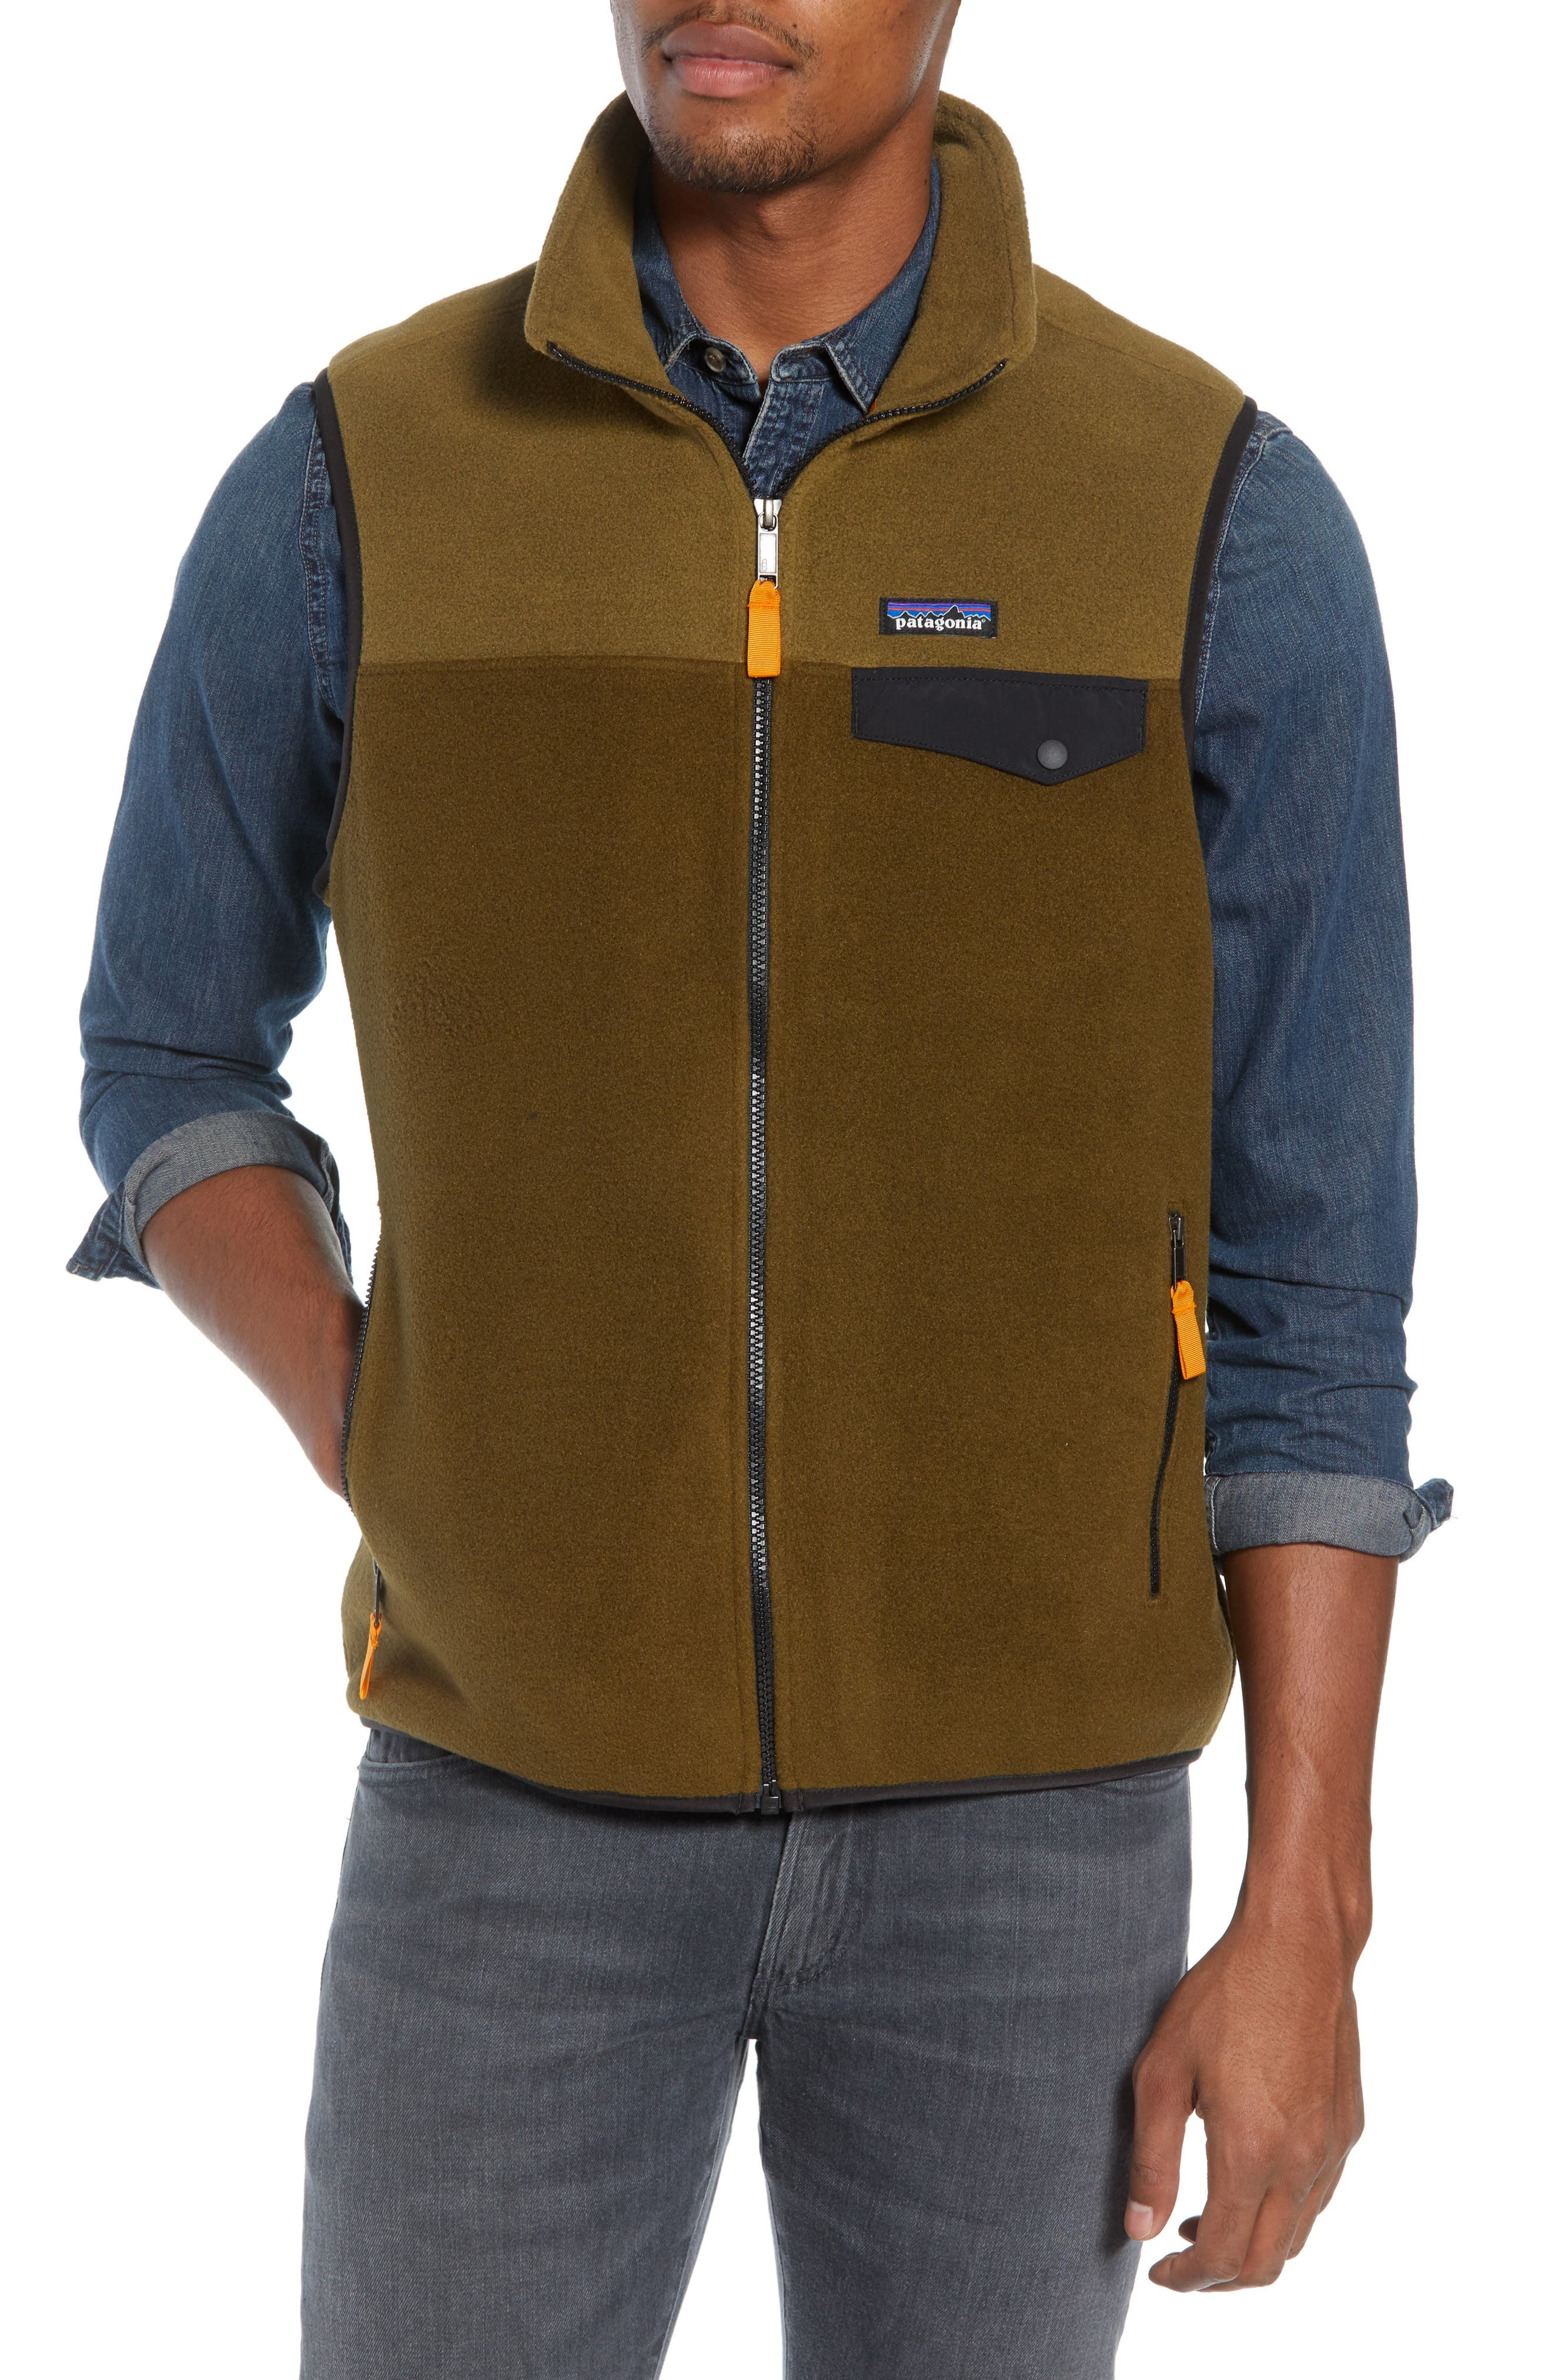 PATAGONIA,                             Synchilla<sup>®</sup>Snap-T<sup>®</sup> Zip FleeceVest,                             Alternate thumbnail 4, color,                             201